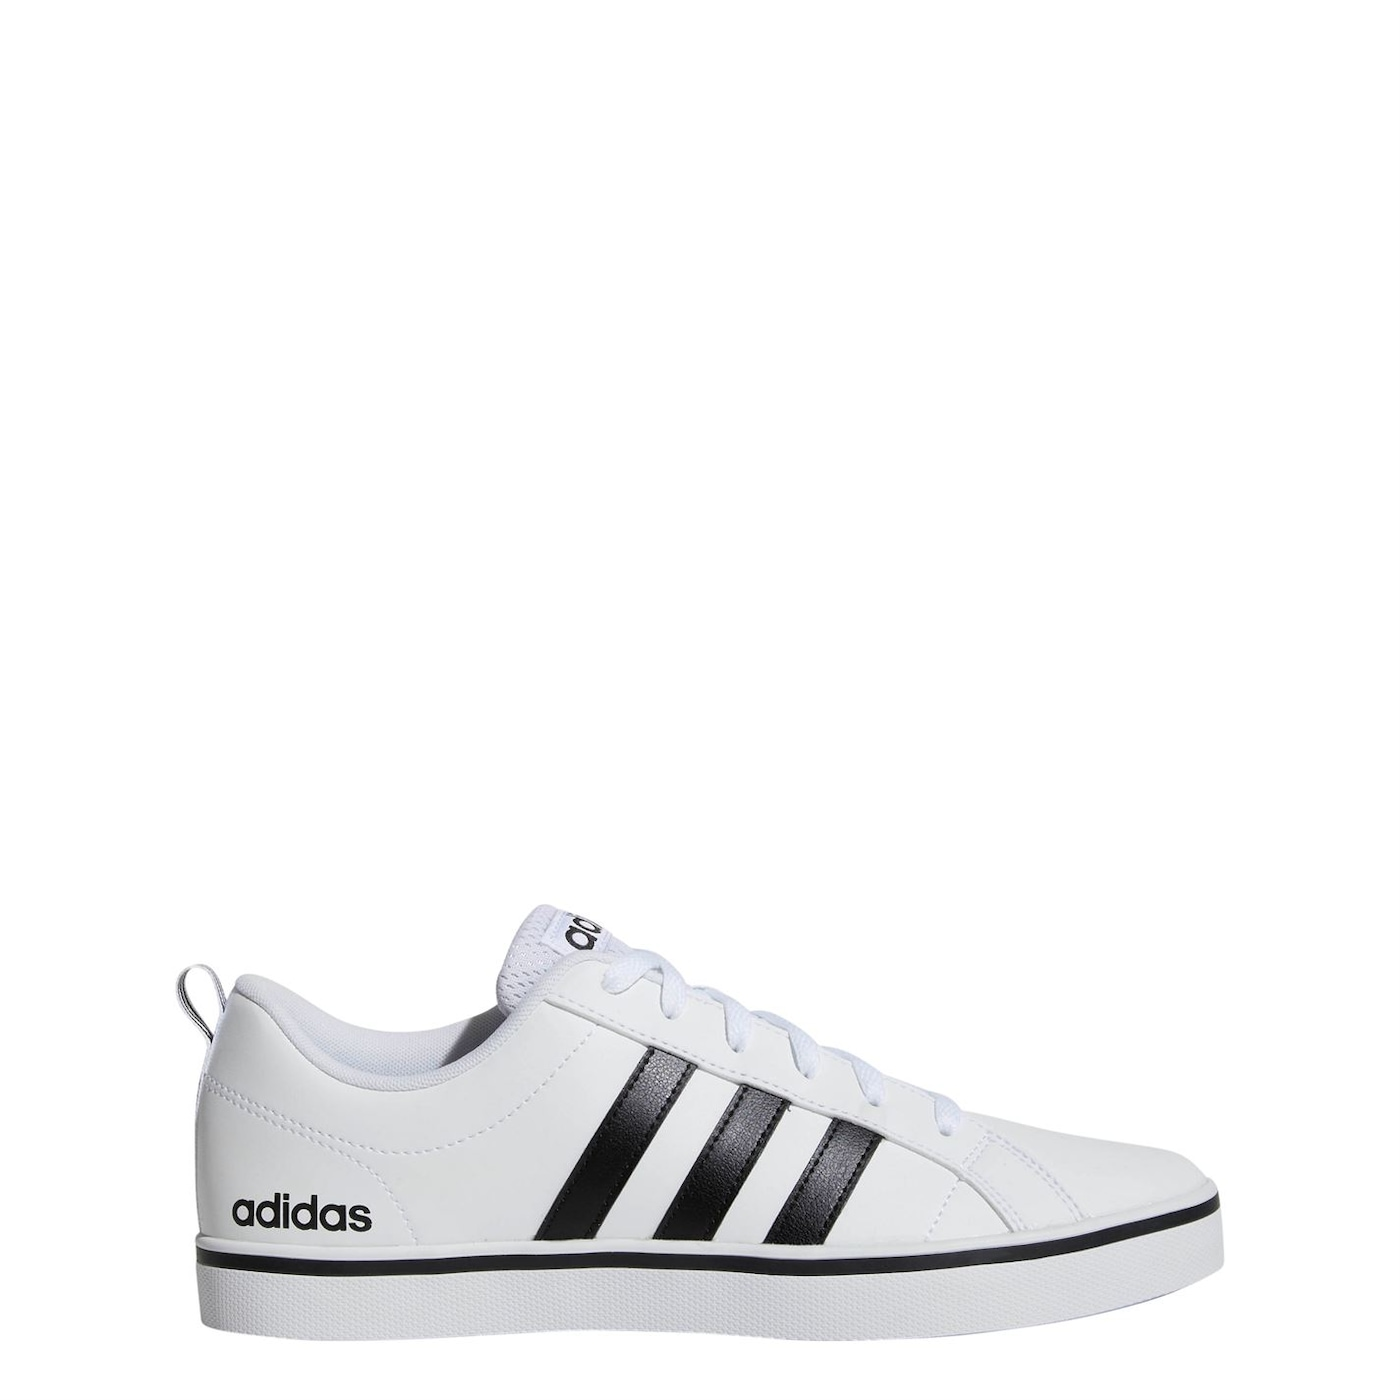 Adidas VS Pace Mens Casual Shoe